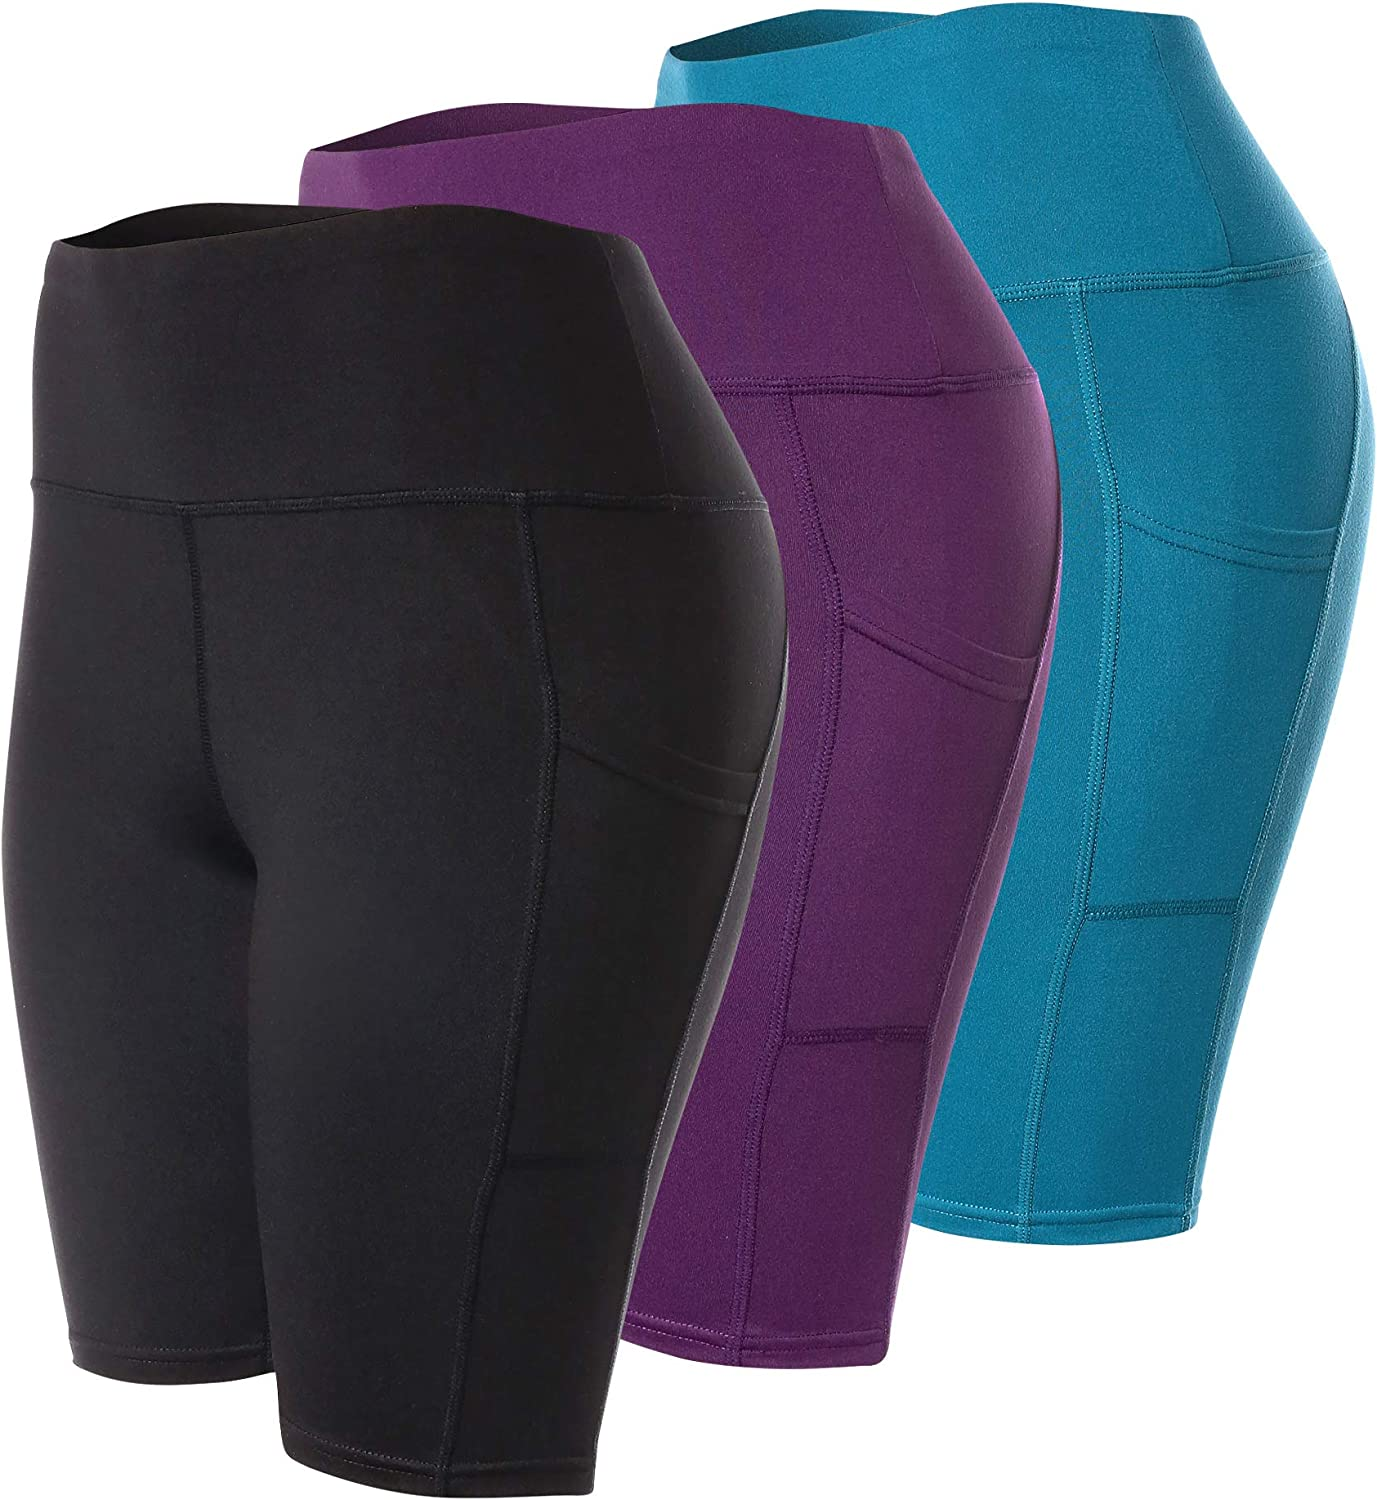 Ranking TOP13 Complete Free Shipping VALINNA 3 Pack Shorts for Women Running Workout Yoga Tummy Bike